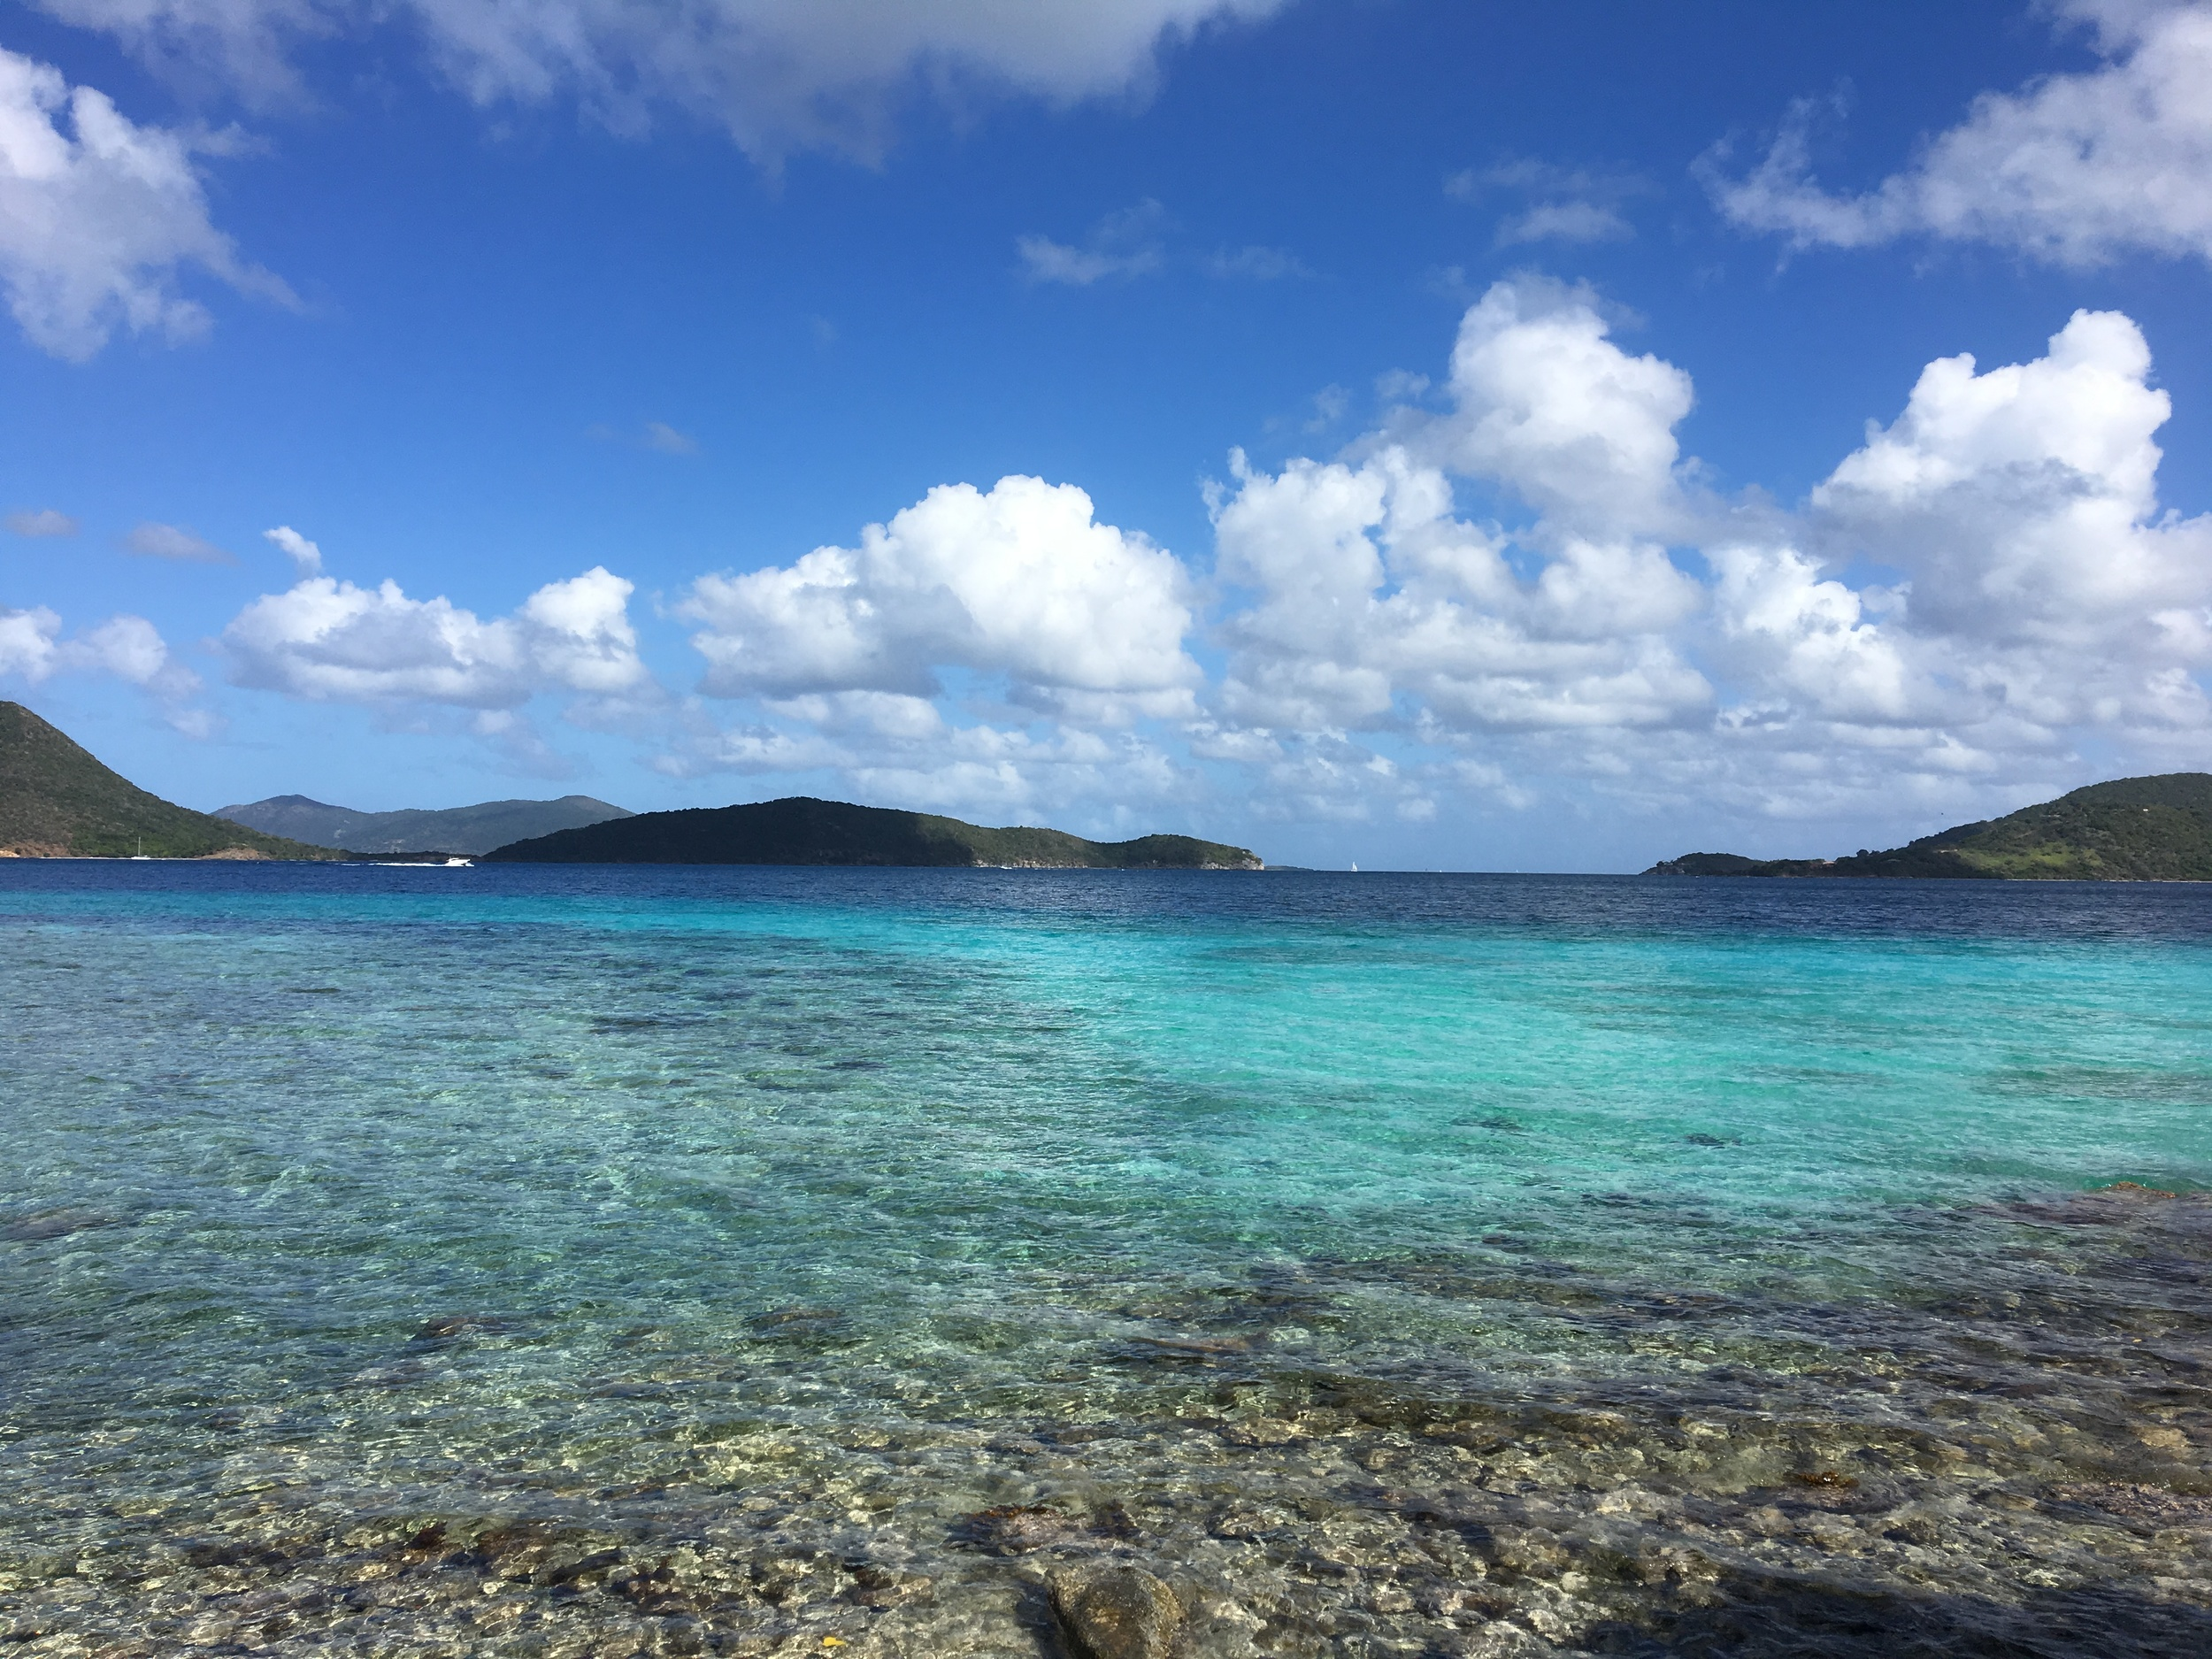 Next I traveled to St. John for a little tropical beach time, which was rejuvenating and the crystal clear ocean was filled with beautiful coral and fishies.